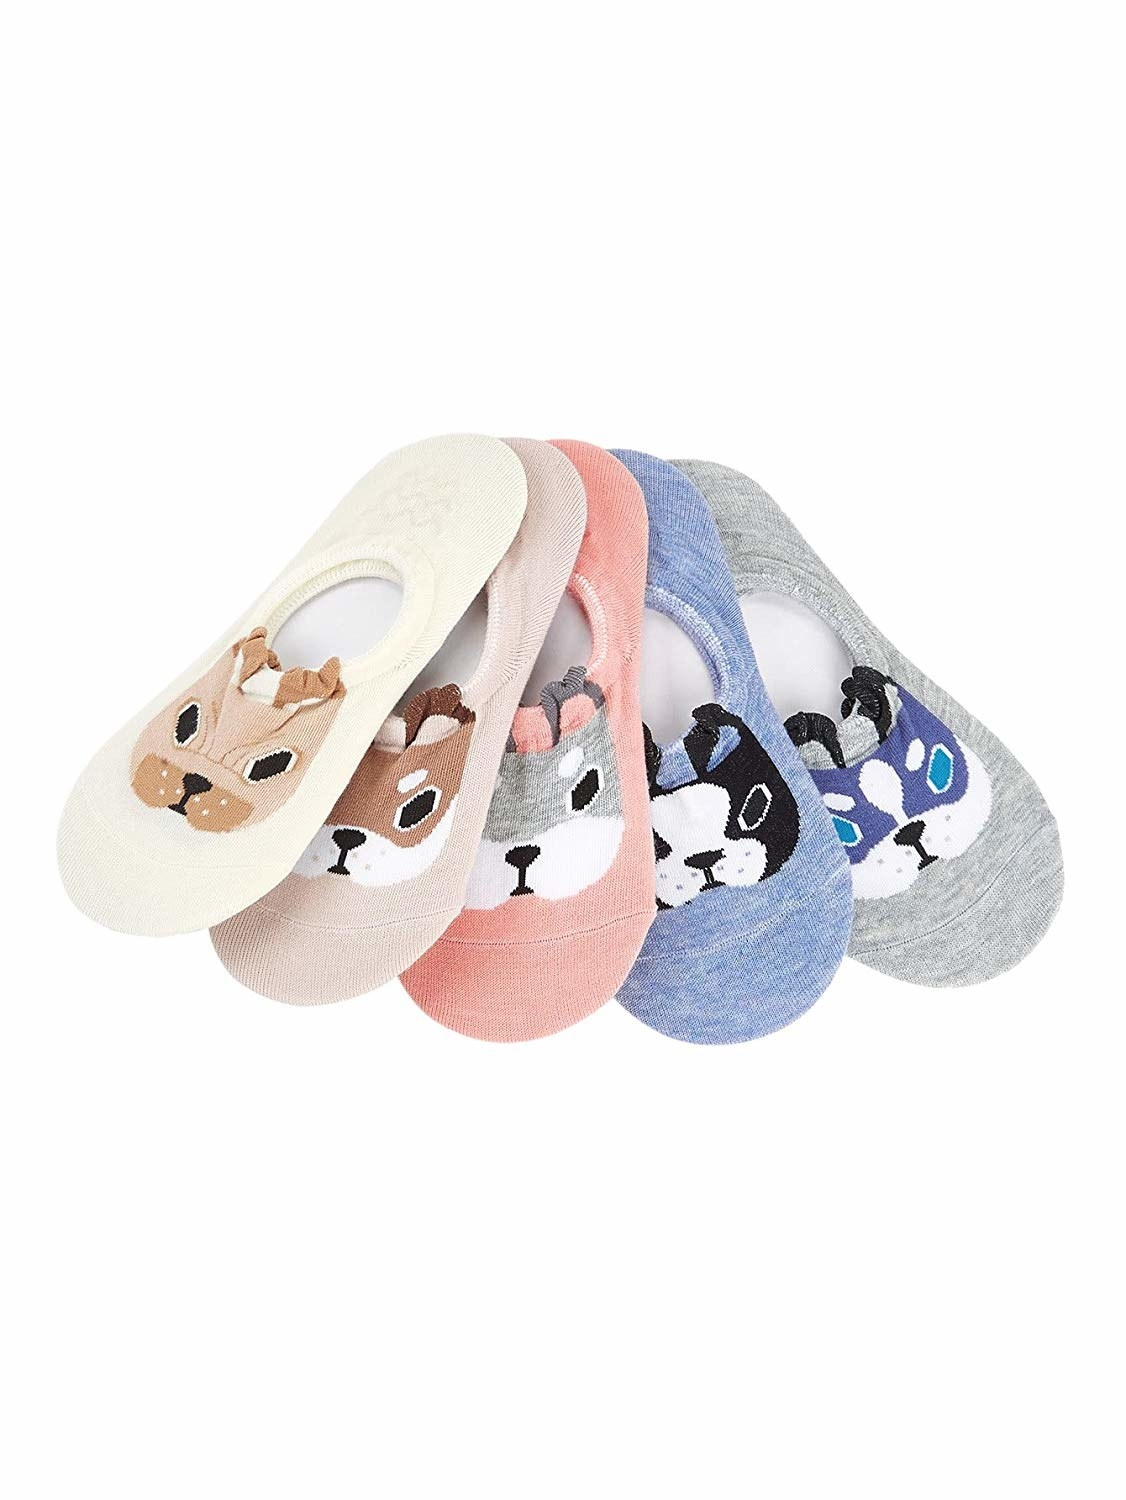 21b89b67ff1c 13. Low-rise ankle socks with puppers (and their 3D ears!) on top for the  low-key dose of cute you need on the daily.